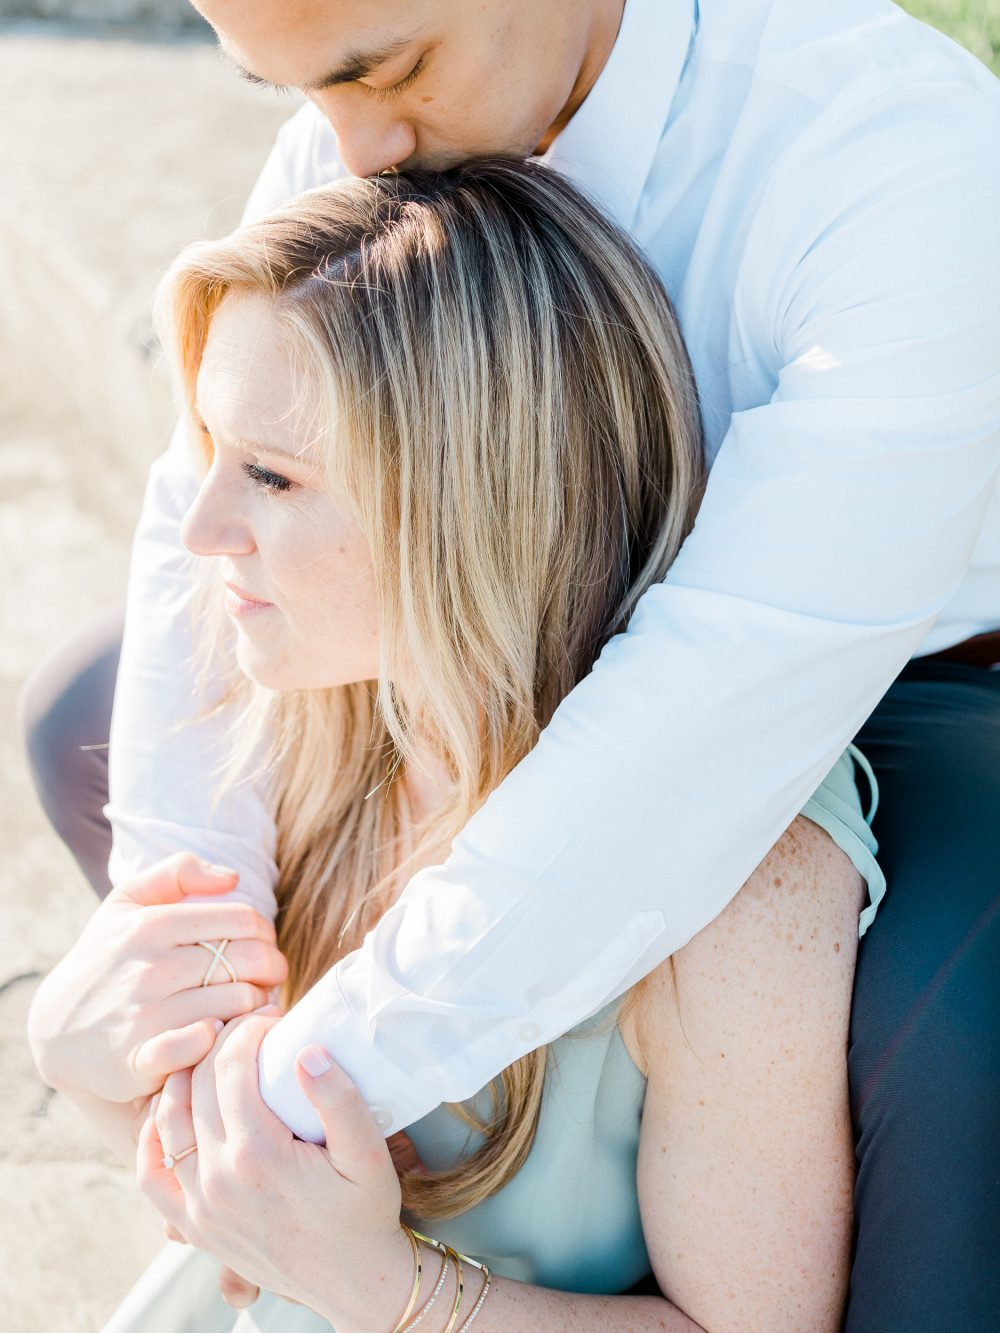 A light and airy engagement session at Quiet Waters Park in Annapolis, Maryland